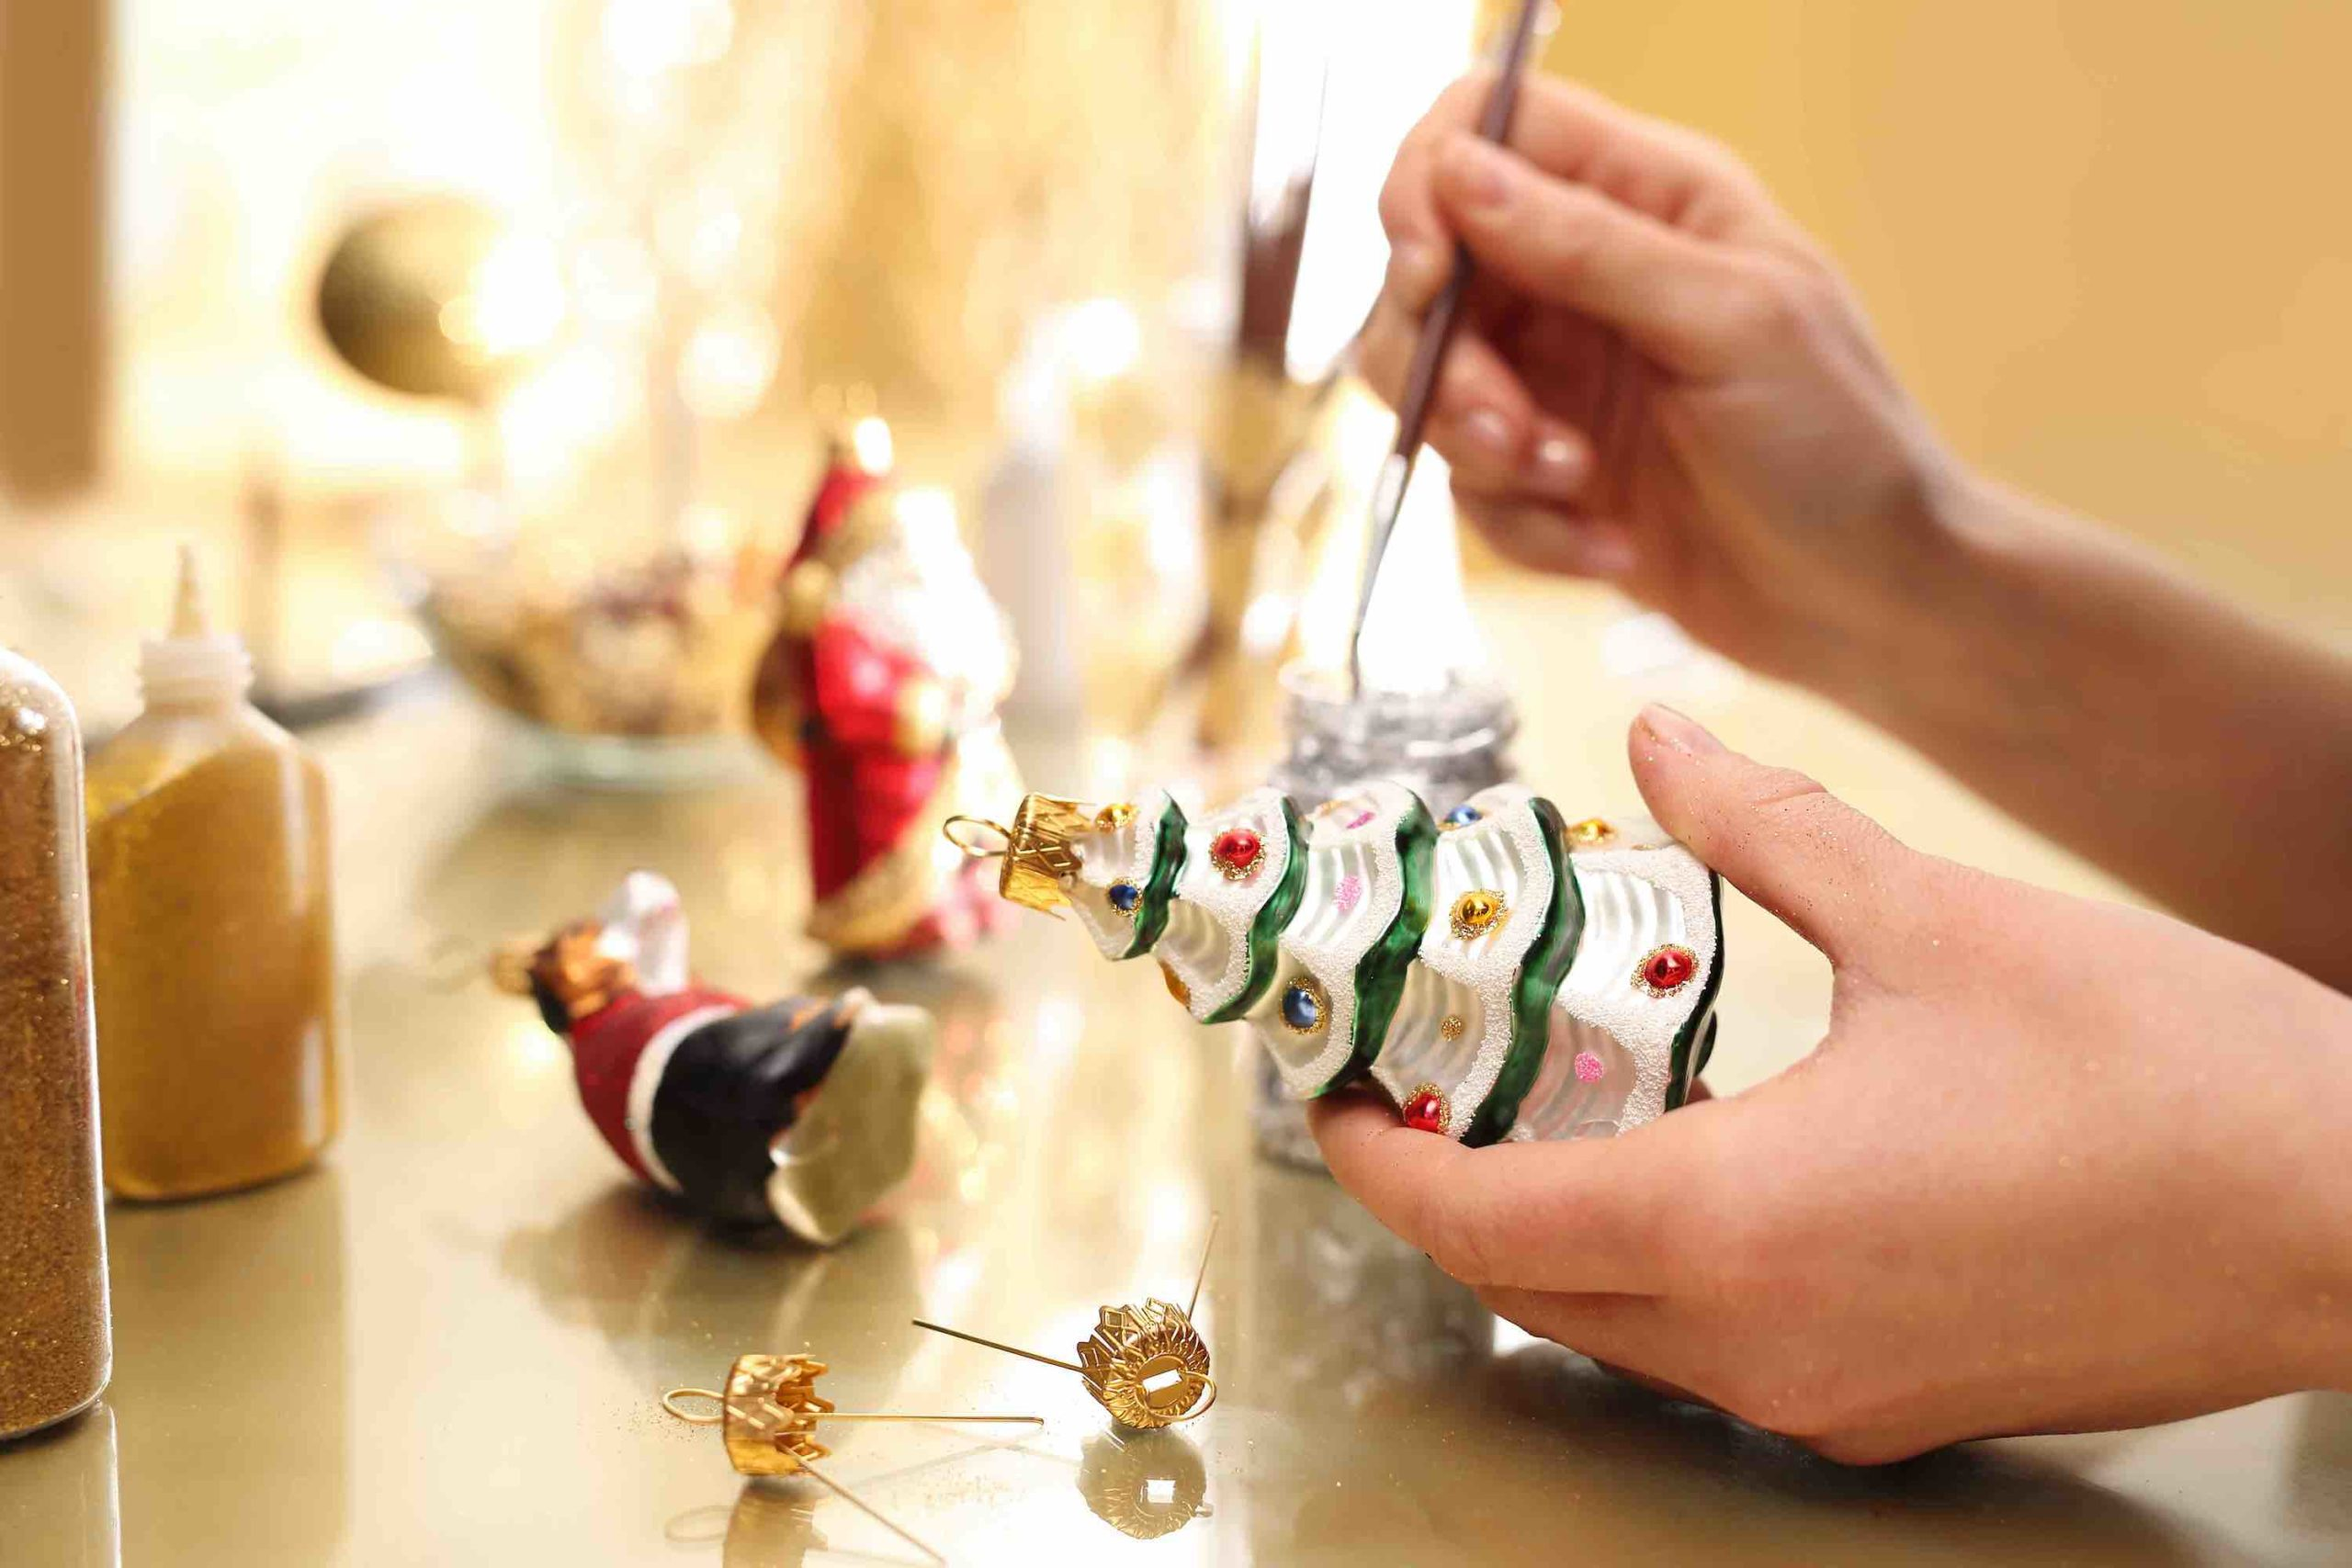 Decorating Christmas ornaments